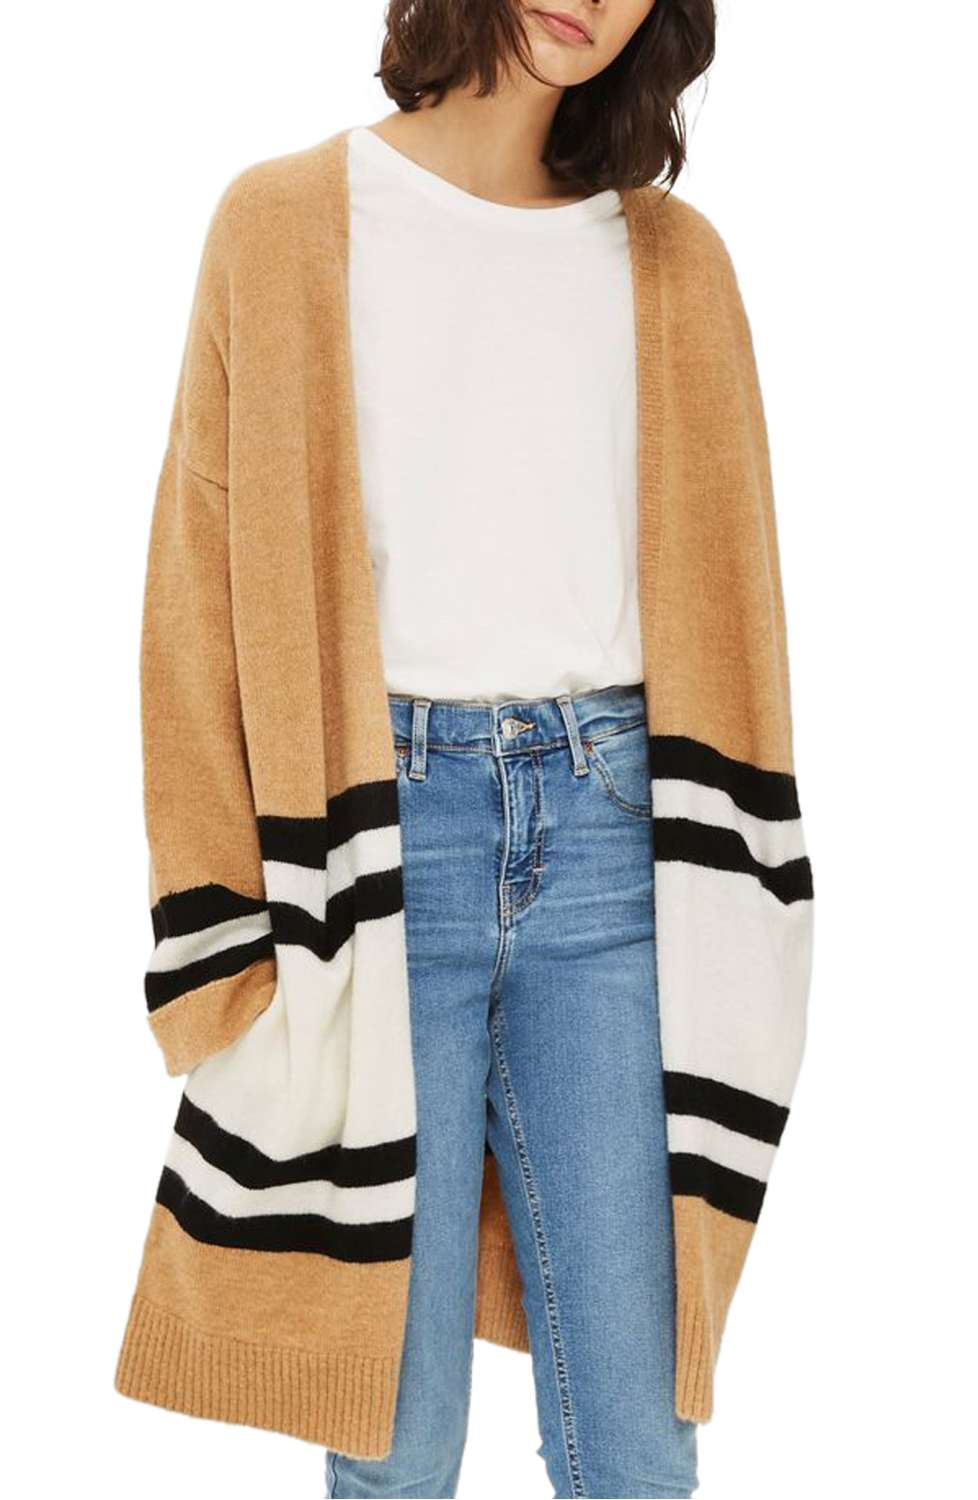 Cardigan striped.jpg